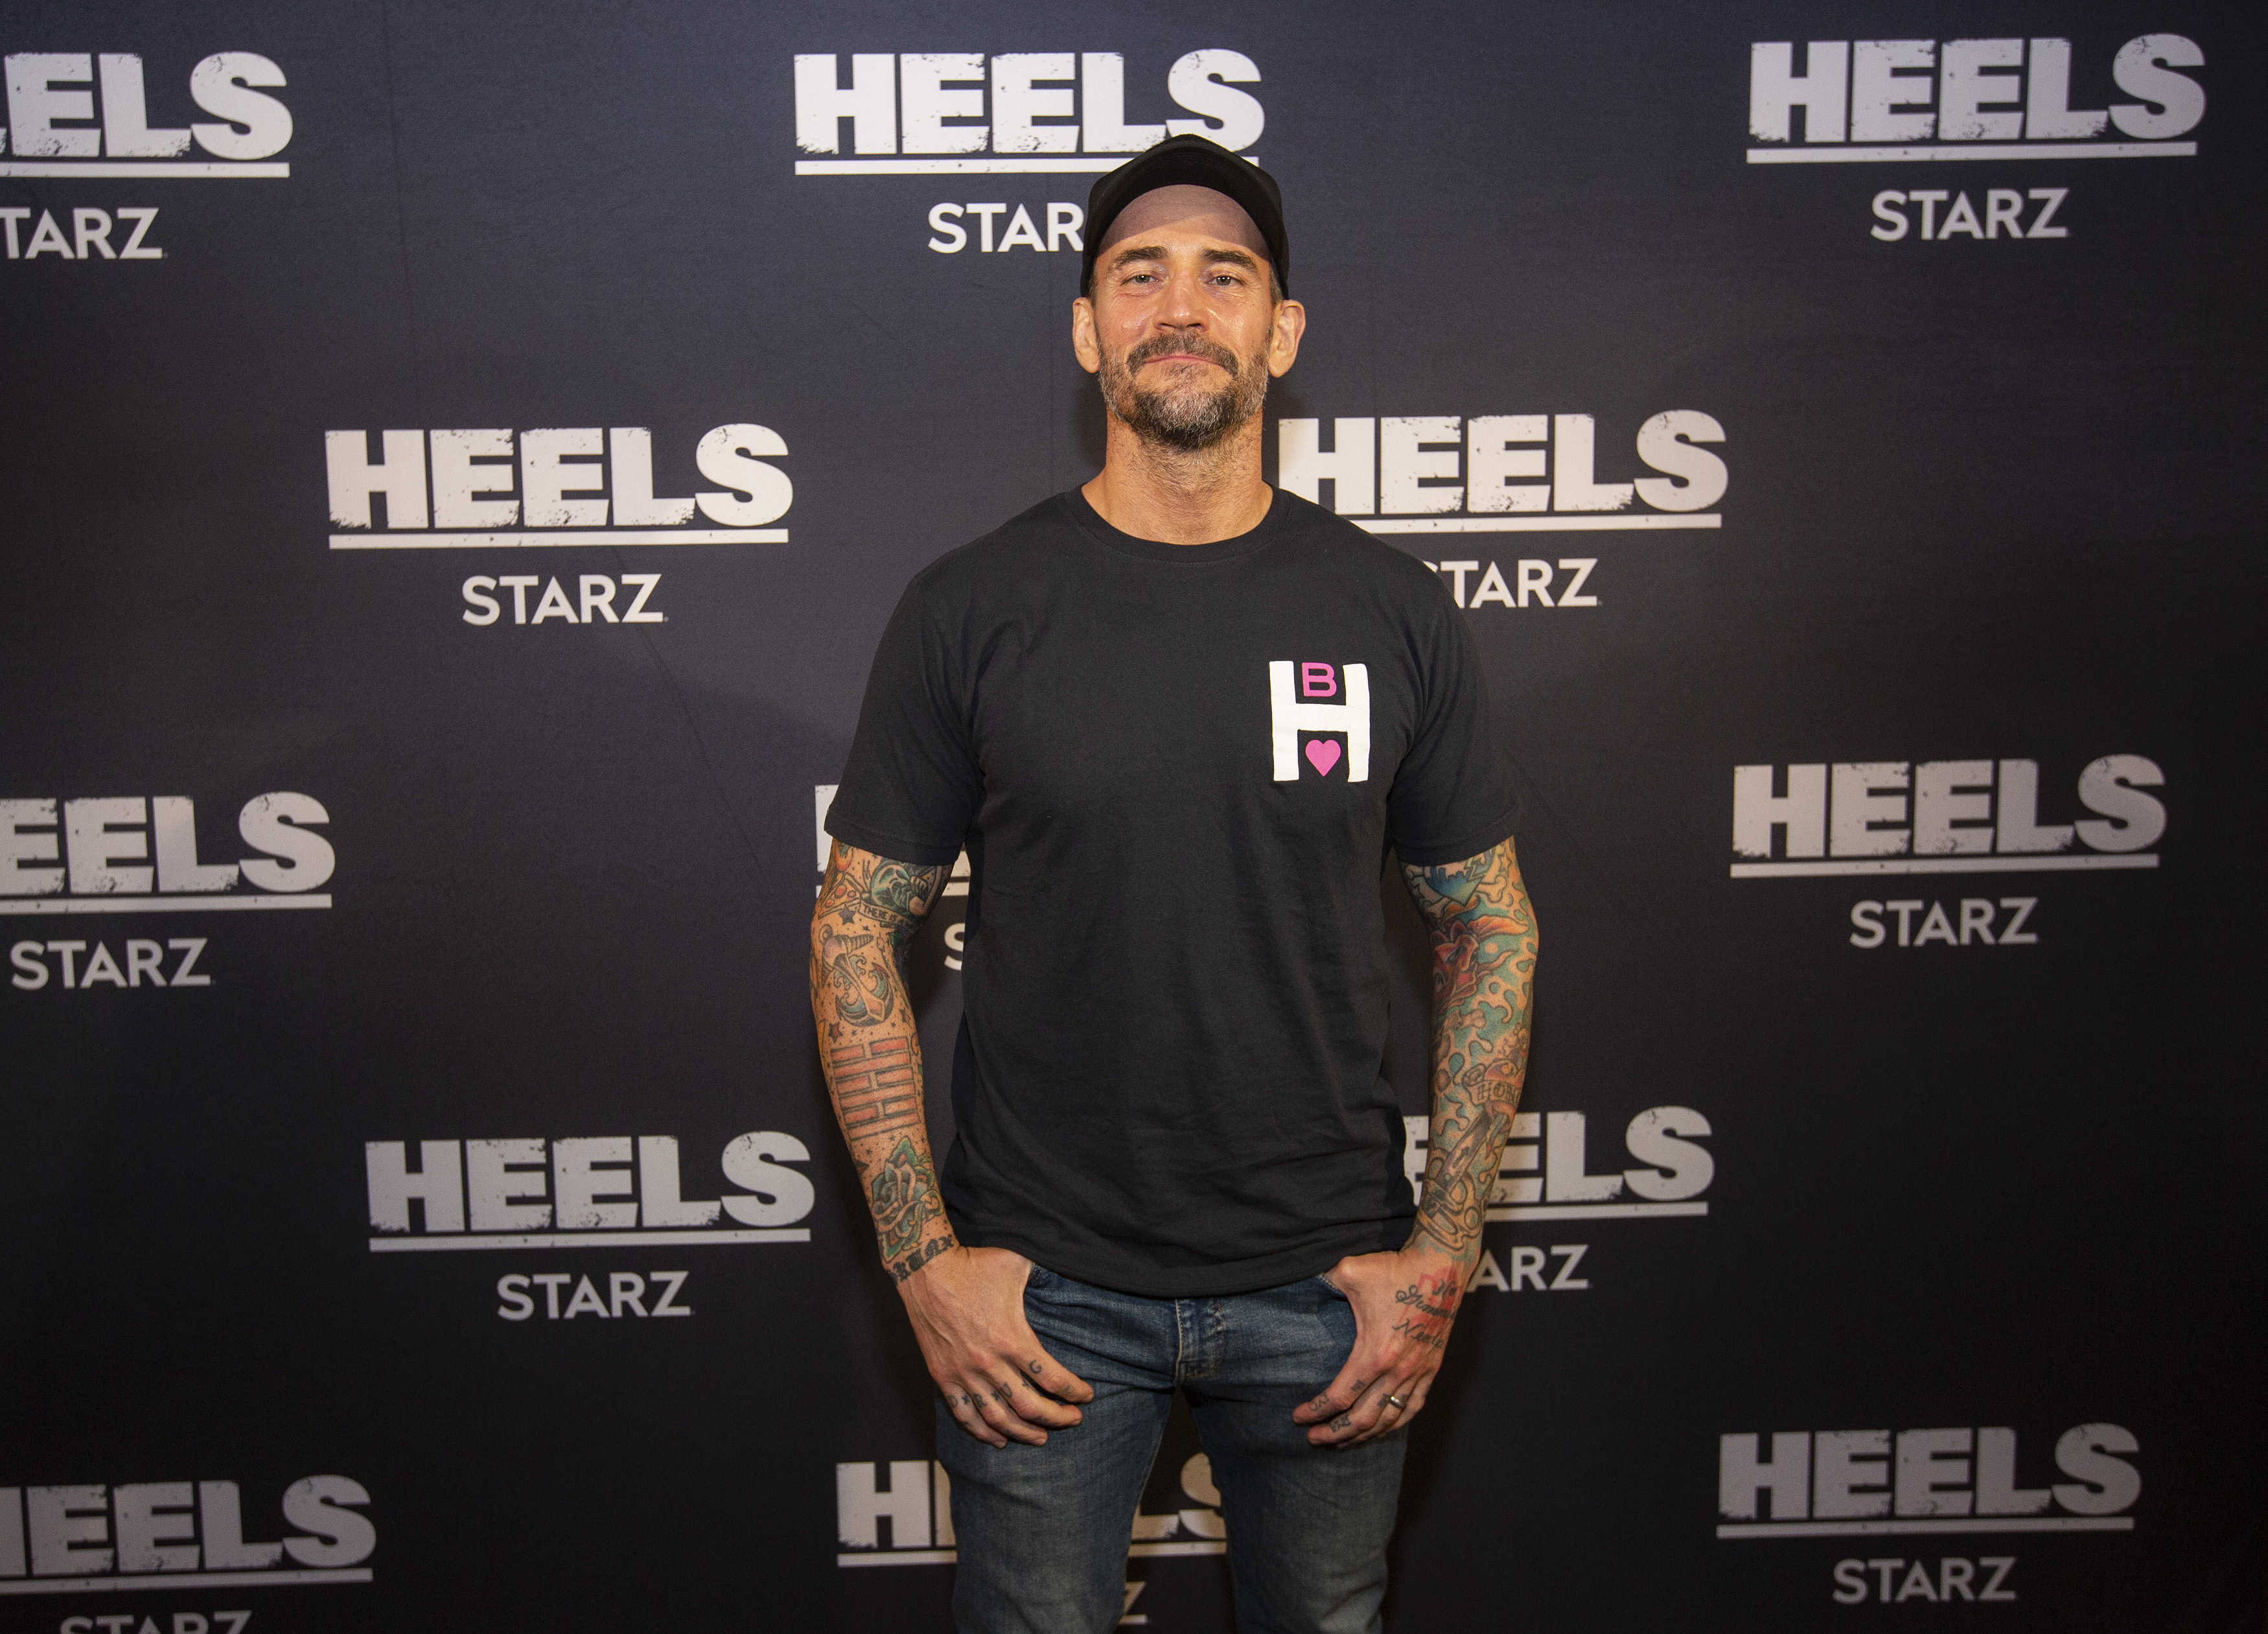 """Actor and wrestler Phil Brooks """"CM Punk"""" pose for a photo during a screening episode of the Starz channel's wrestling drama """"Heels"""" at the AMC River East Theater, on August 26, 2021 in Chicago, Illinois."""